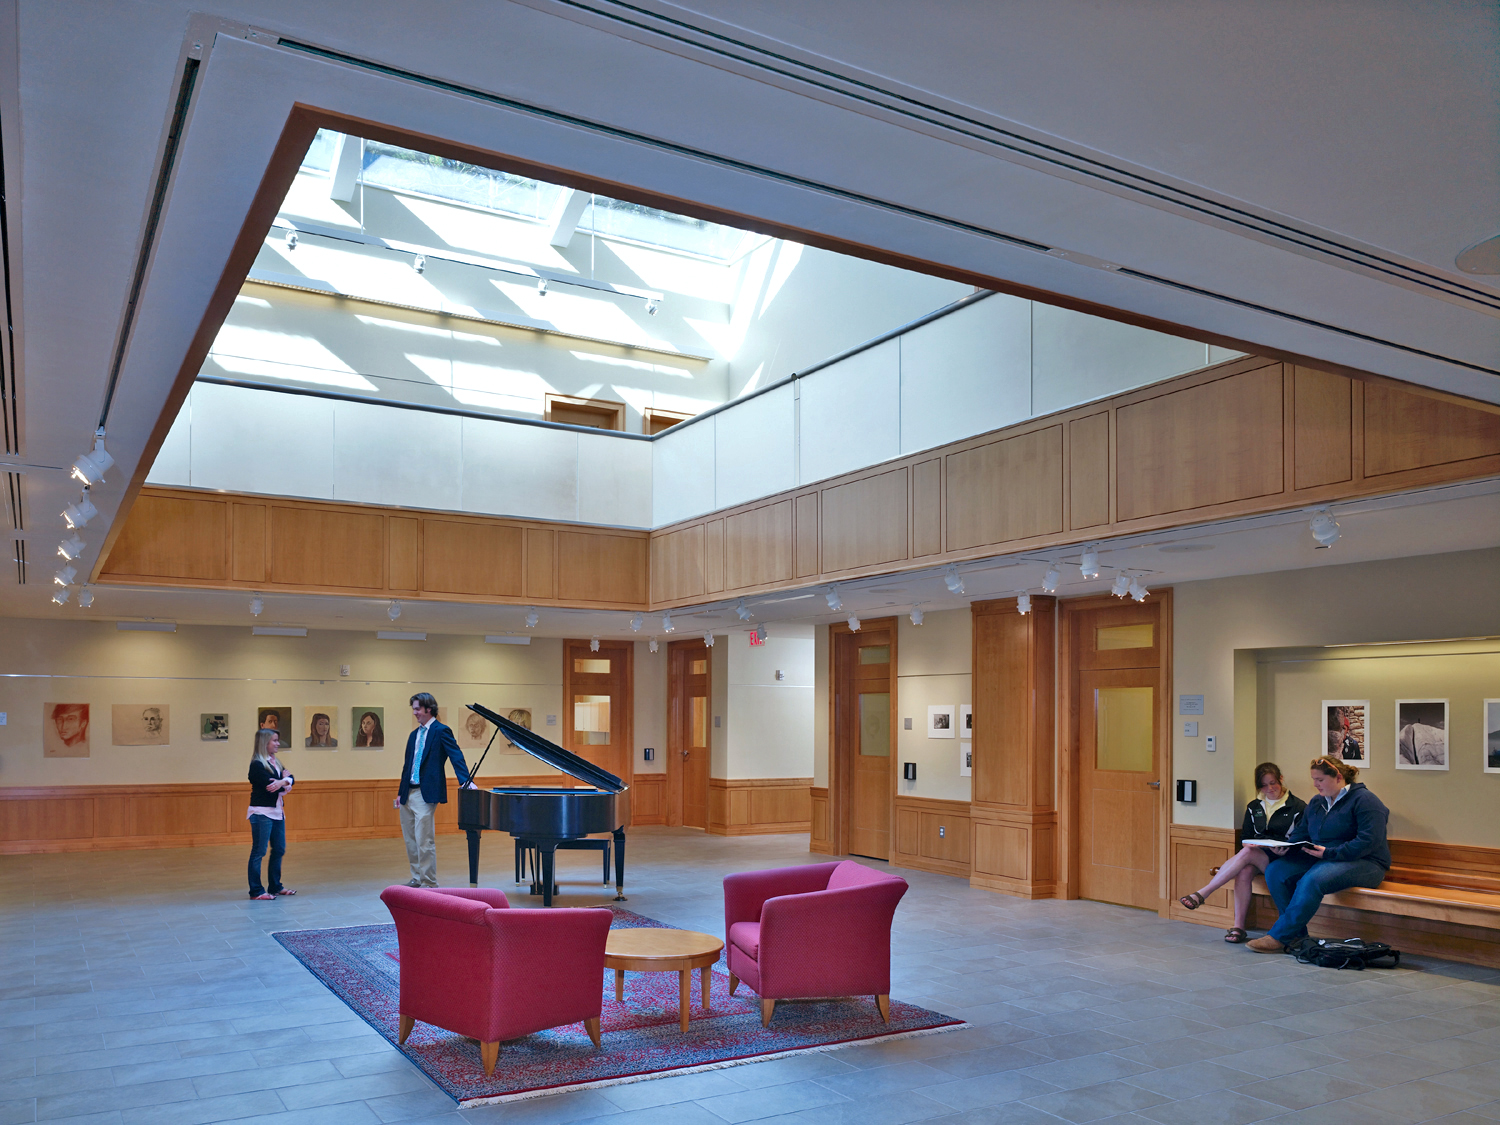 The entrance of Berkshire Hall, this image shows a wide opening in the center of a room that leads to a skylight. The room is carpeted with red chairs and a piano. Students and faculty mingle in the area.